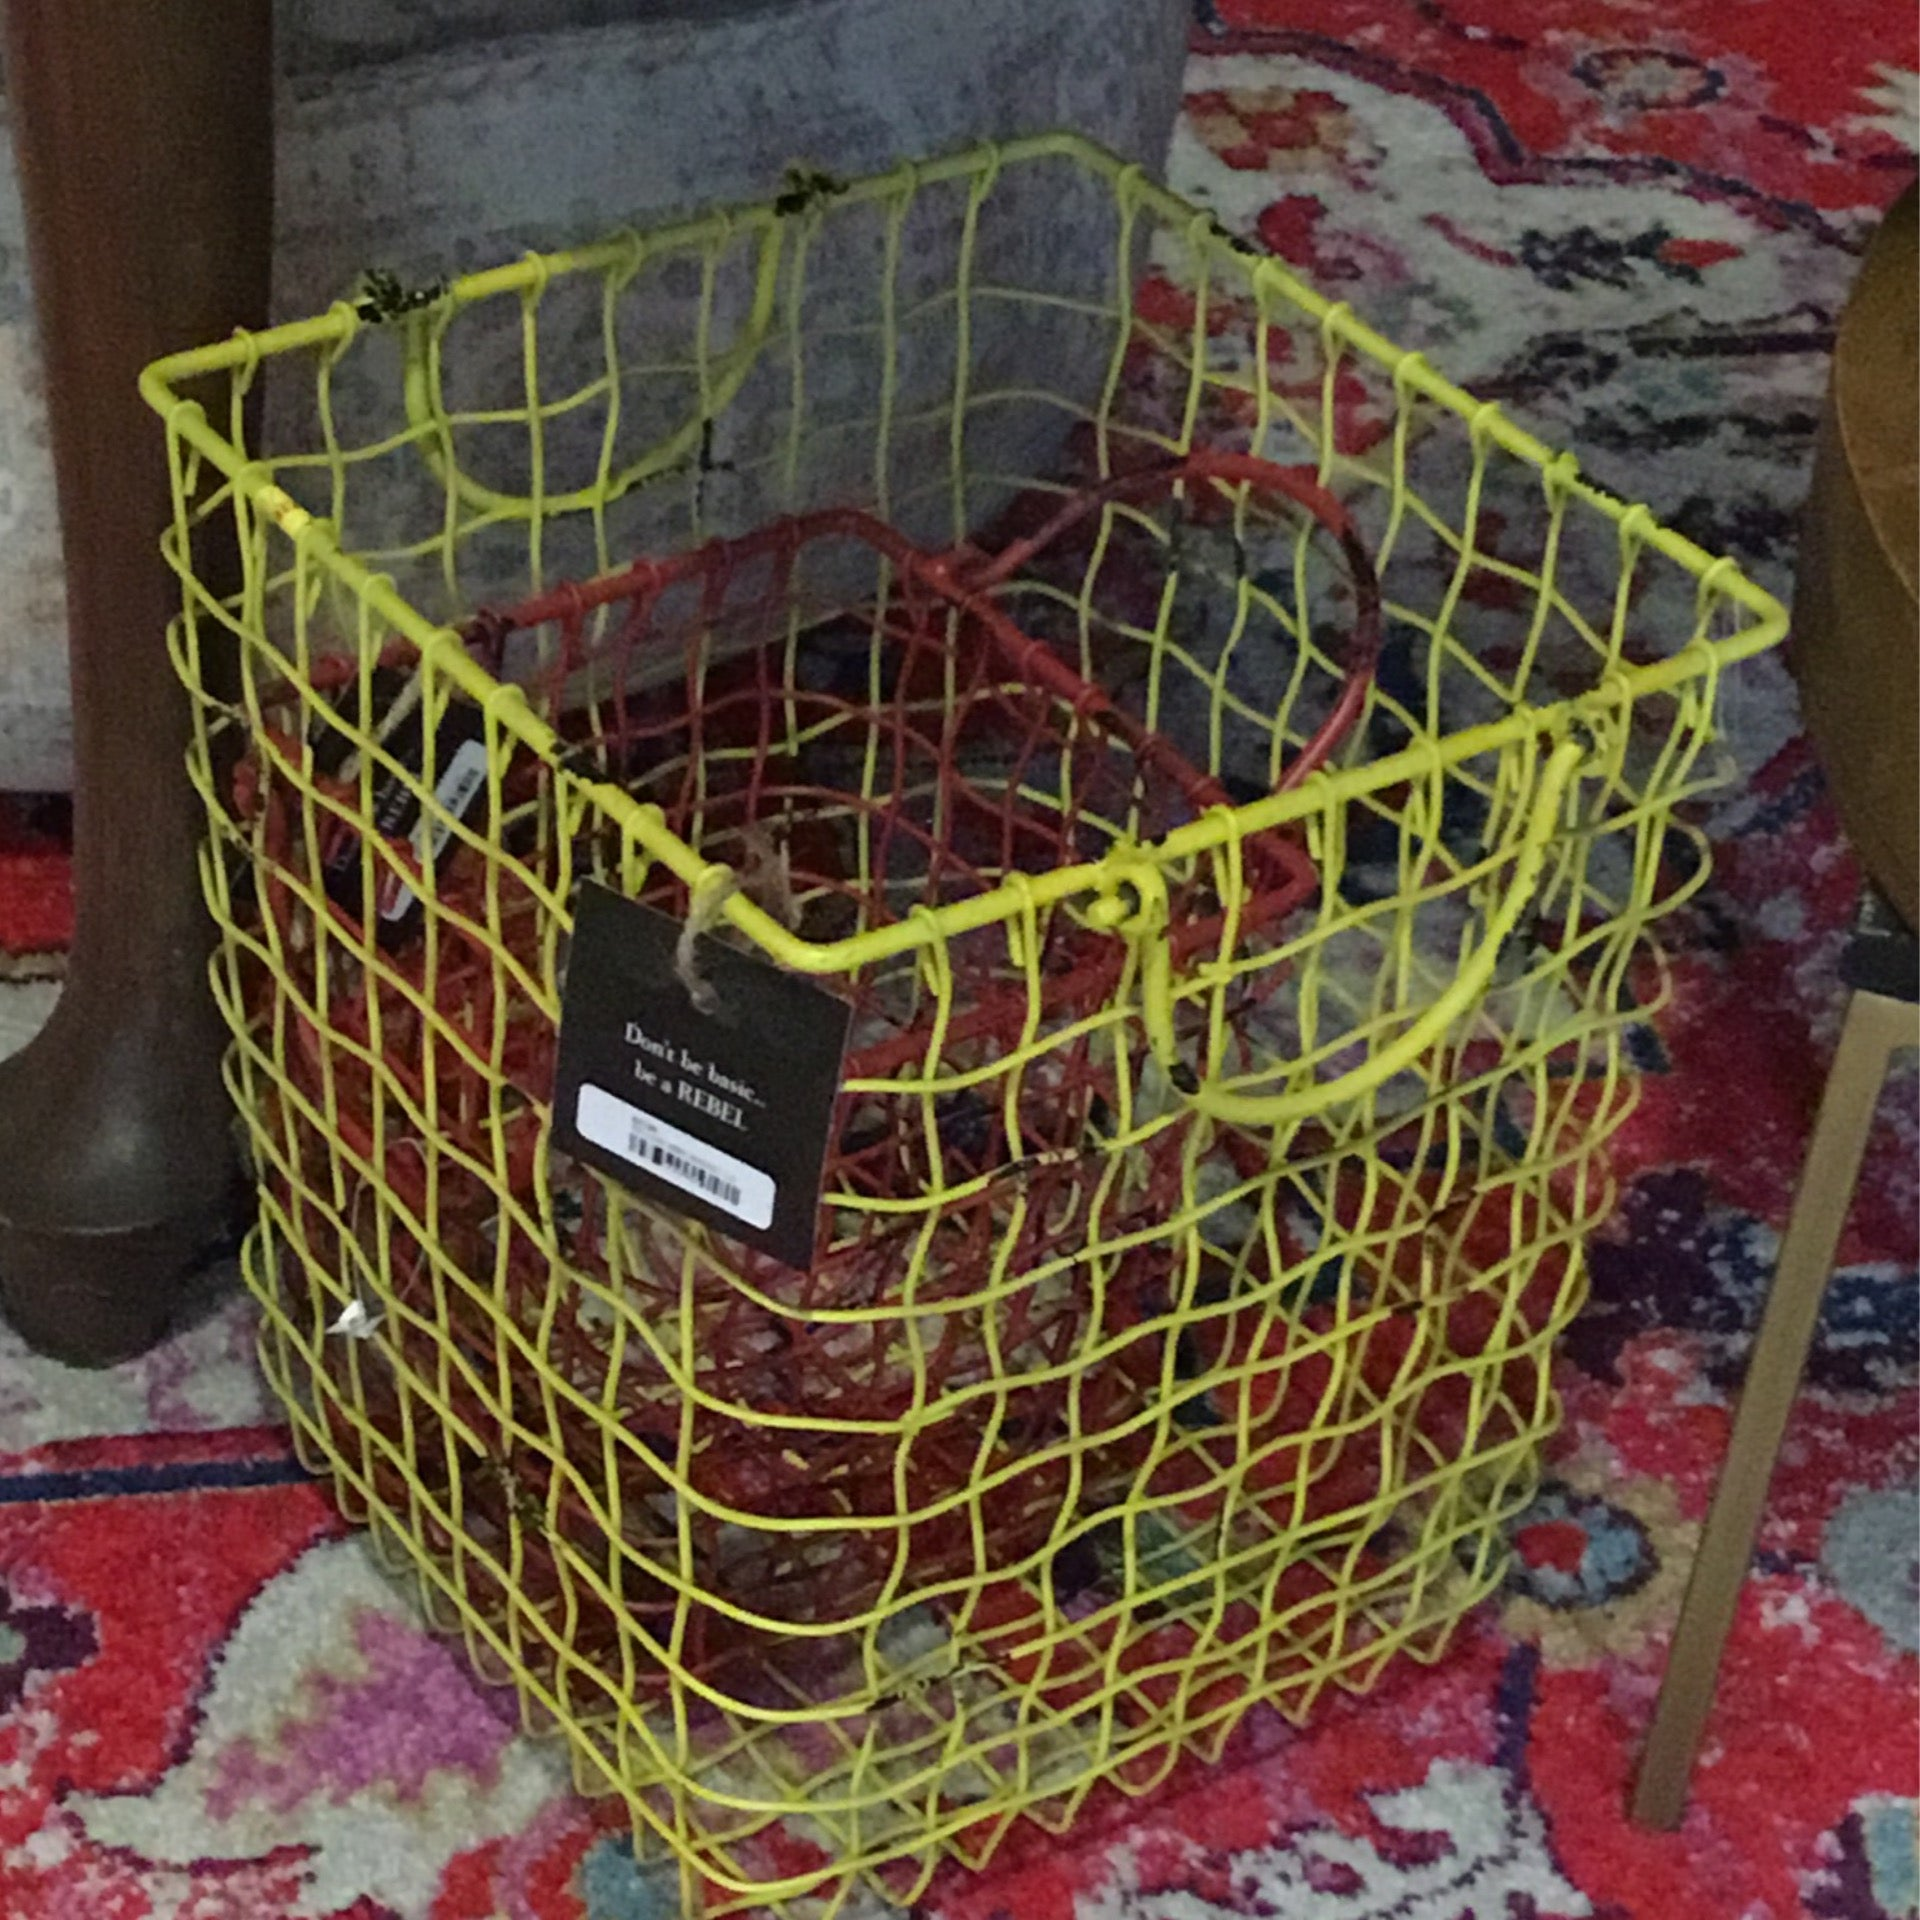 YELLOW WIRE BASKET LG